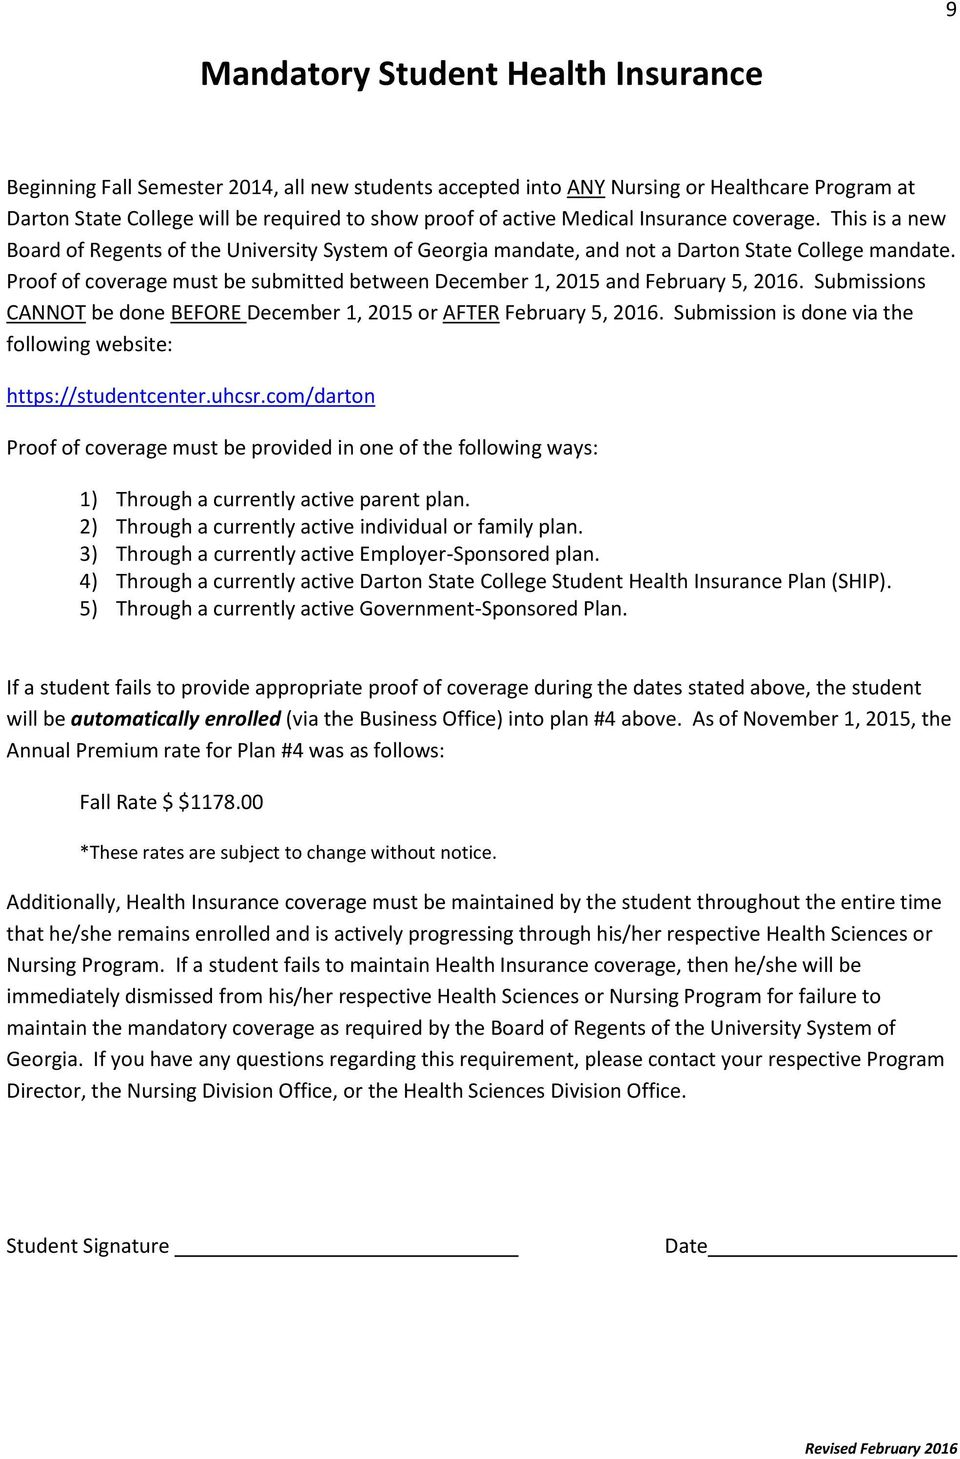 Proof of coverage must be submitted between December 1, 2015 and February 5, 2016. Submissions CANNOT be done BEFORE December 1, 2015 or AFTER February 5, 2016.